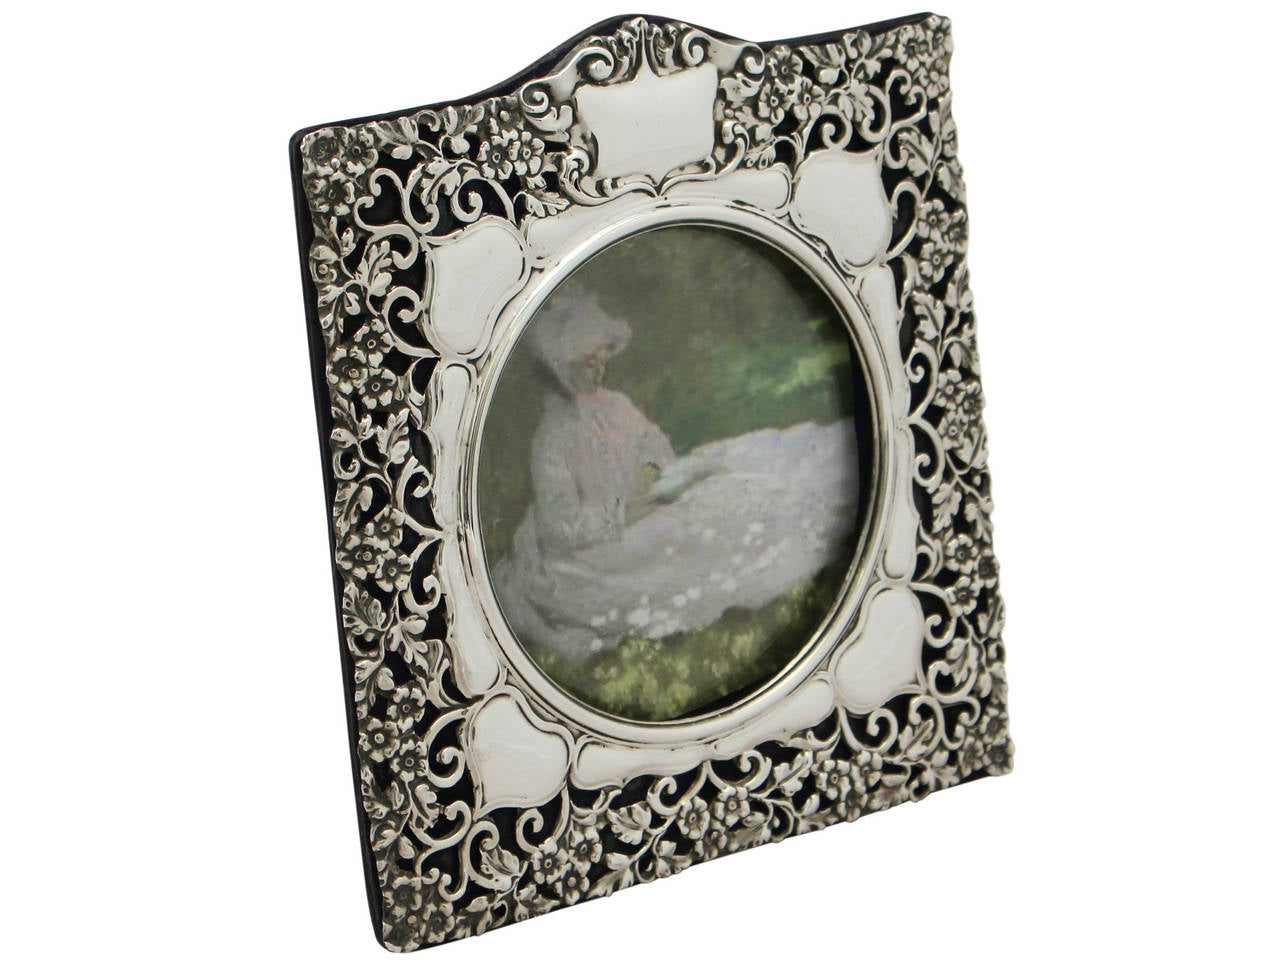 A fine and impressive antique Edwardian English sterling silver photograph frame; an addition to our ornamental silverware collection.